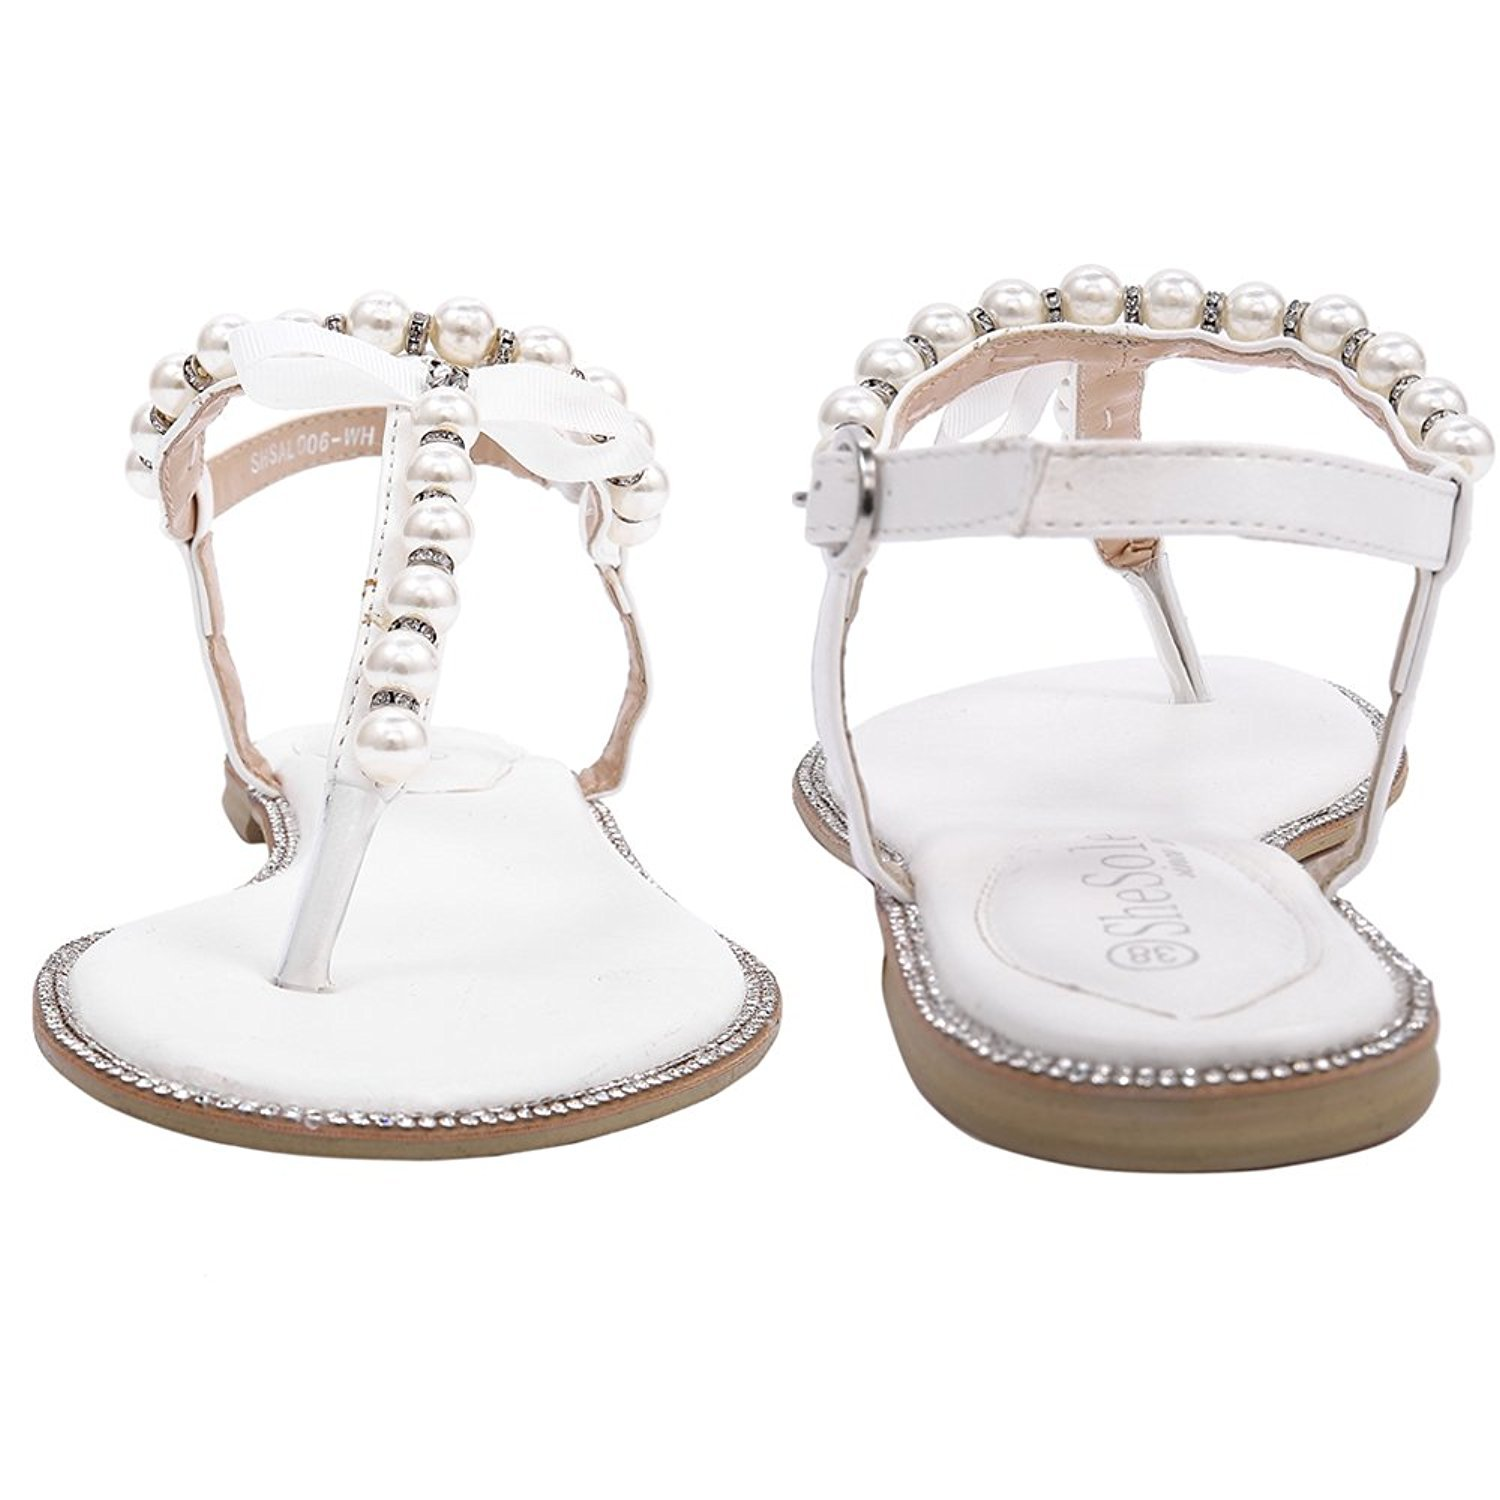 b50def62253e SHOEZY Womens Pu Leather Flat Sandals Wedding Pearls Rhinestone Thong Strap  Gladiator Shoes US 6 White  Amazon.ca  Shoes   Handbags